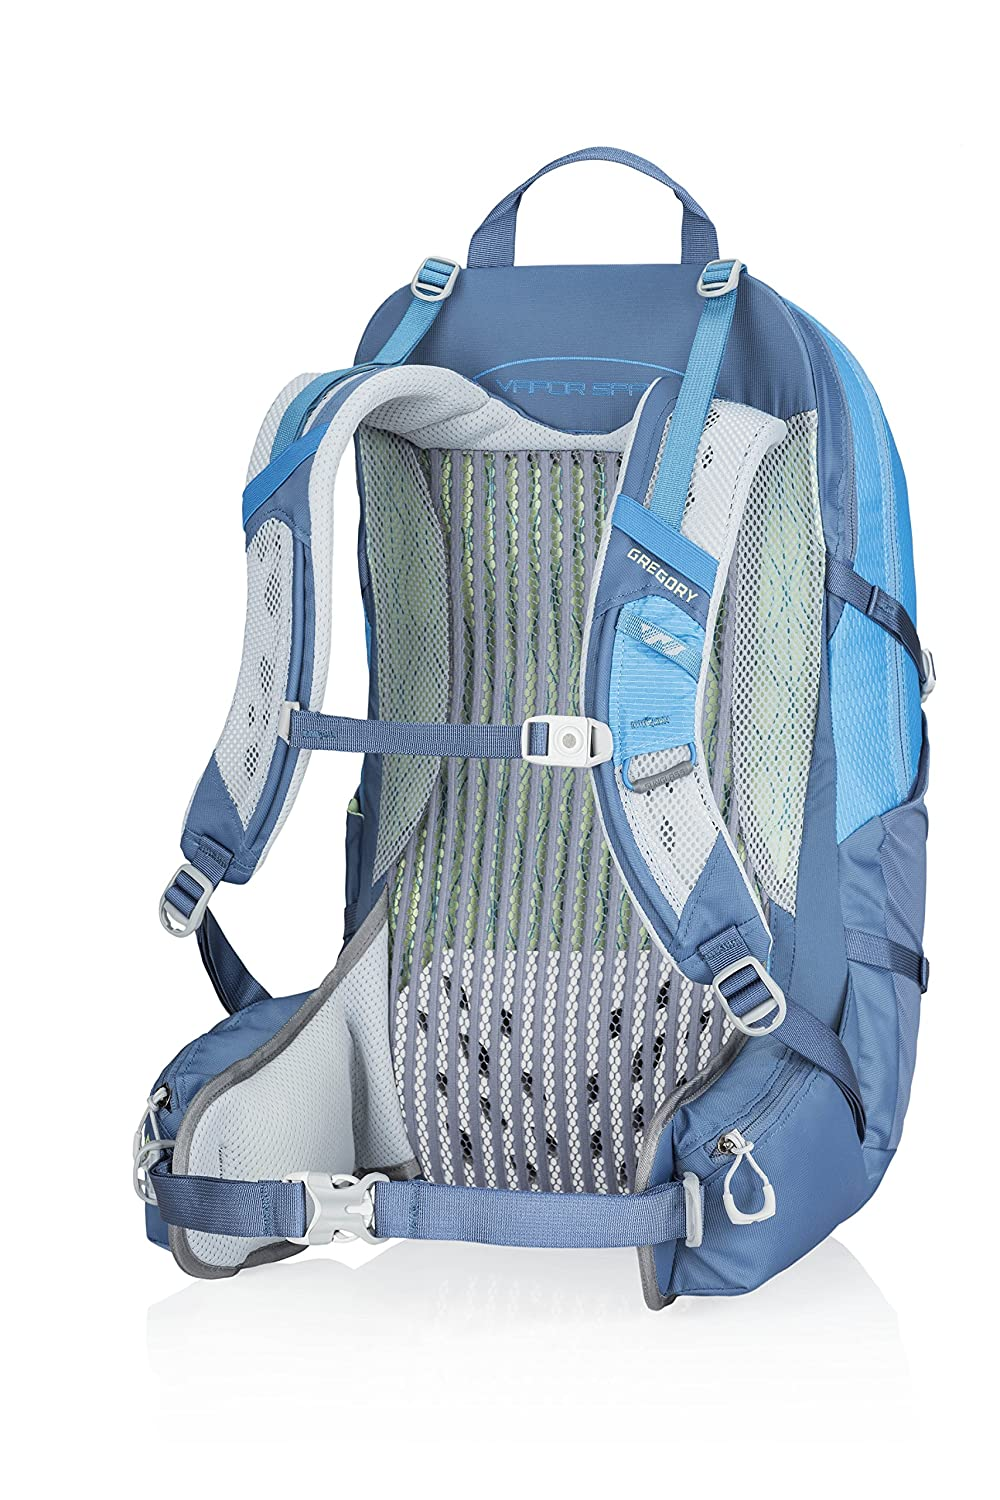 Gregory Mountain Products Juno 25 Liter Women s Day Hiking Backpack Hiking, Walking, Travel Free Hydration Bladder, Breathable Components, Cushioned Straps Stay Hydrated on The Trail